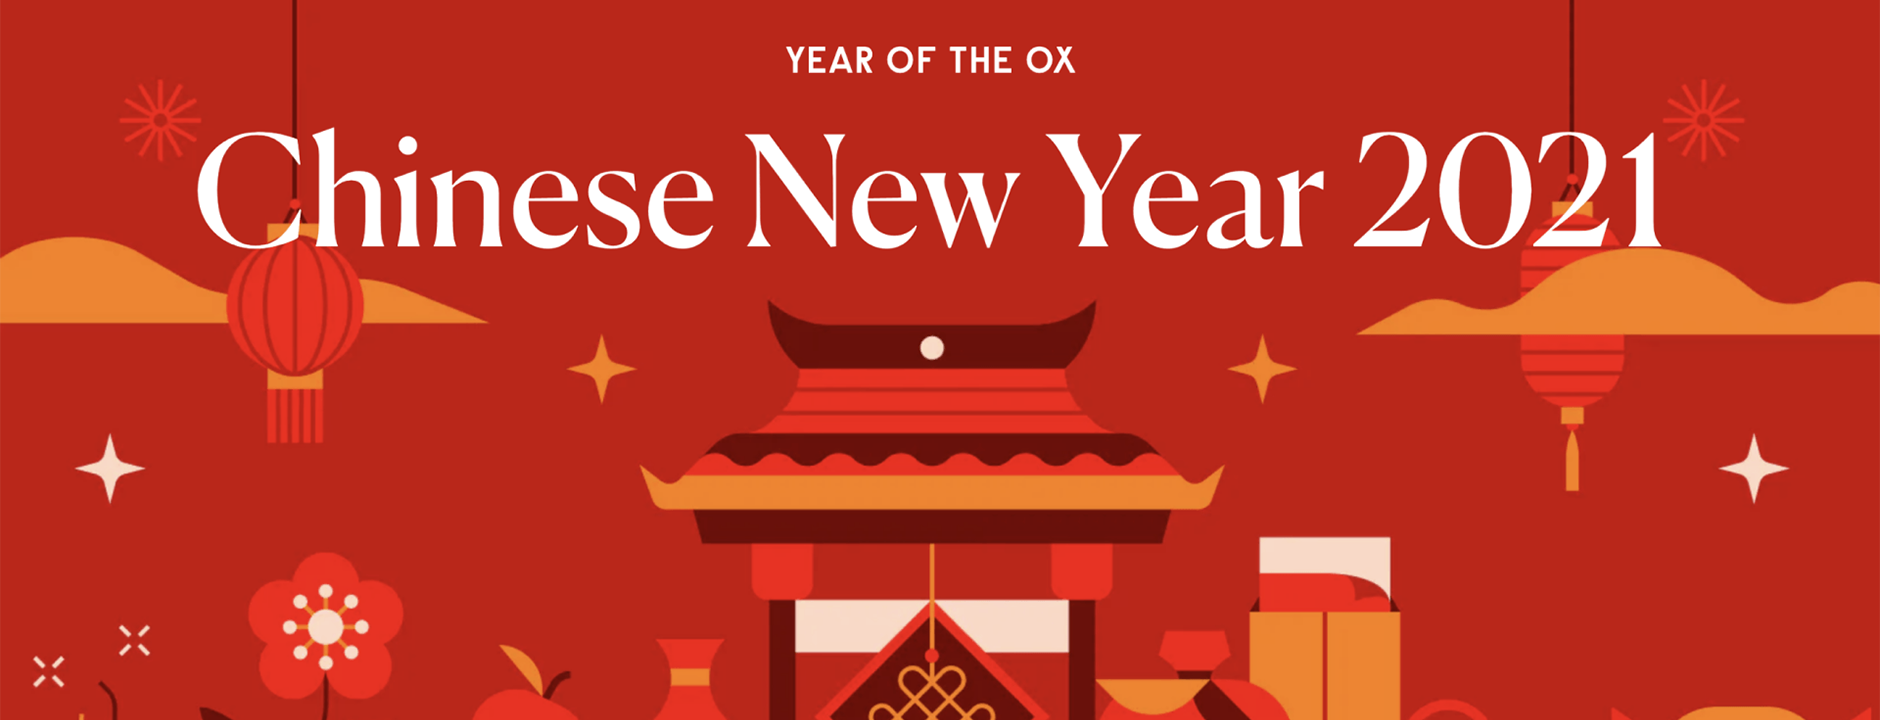 Notice of Chinese New Year holidays 2021